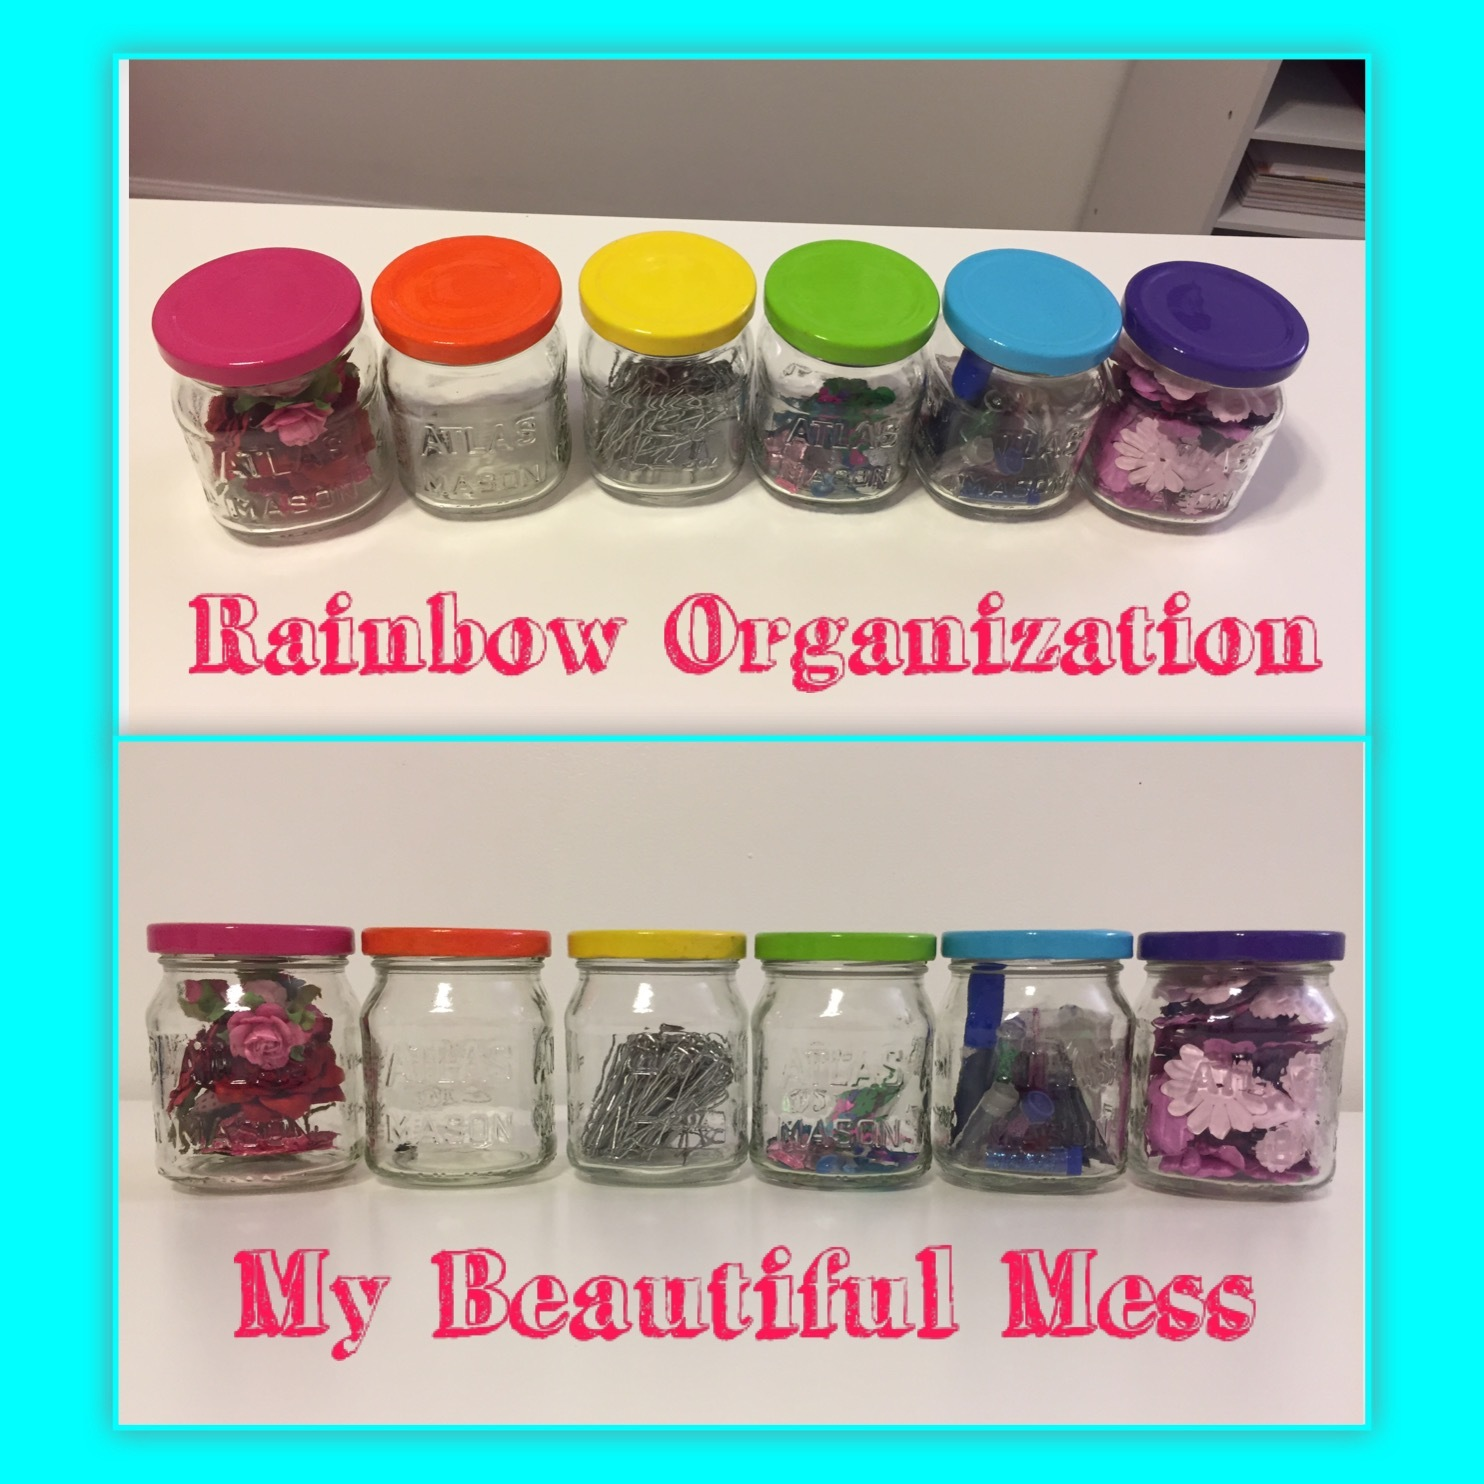 My Beautiful Mess - Rainbow Organization with Colored Jar Lids